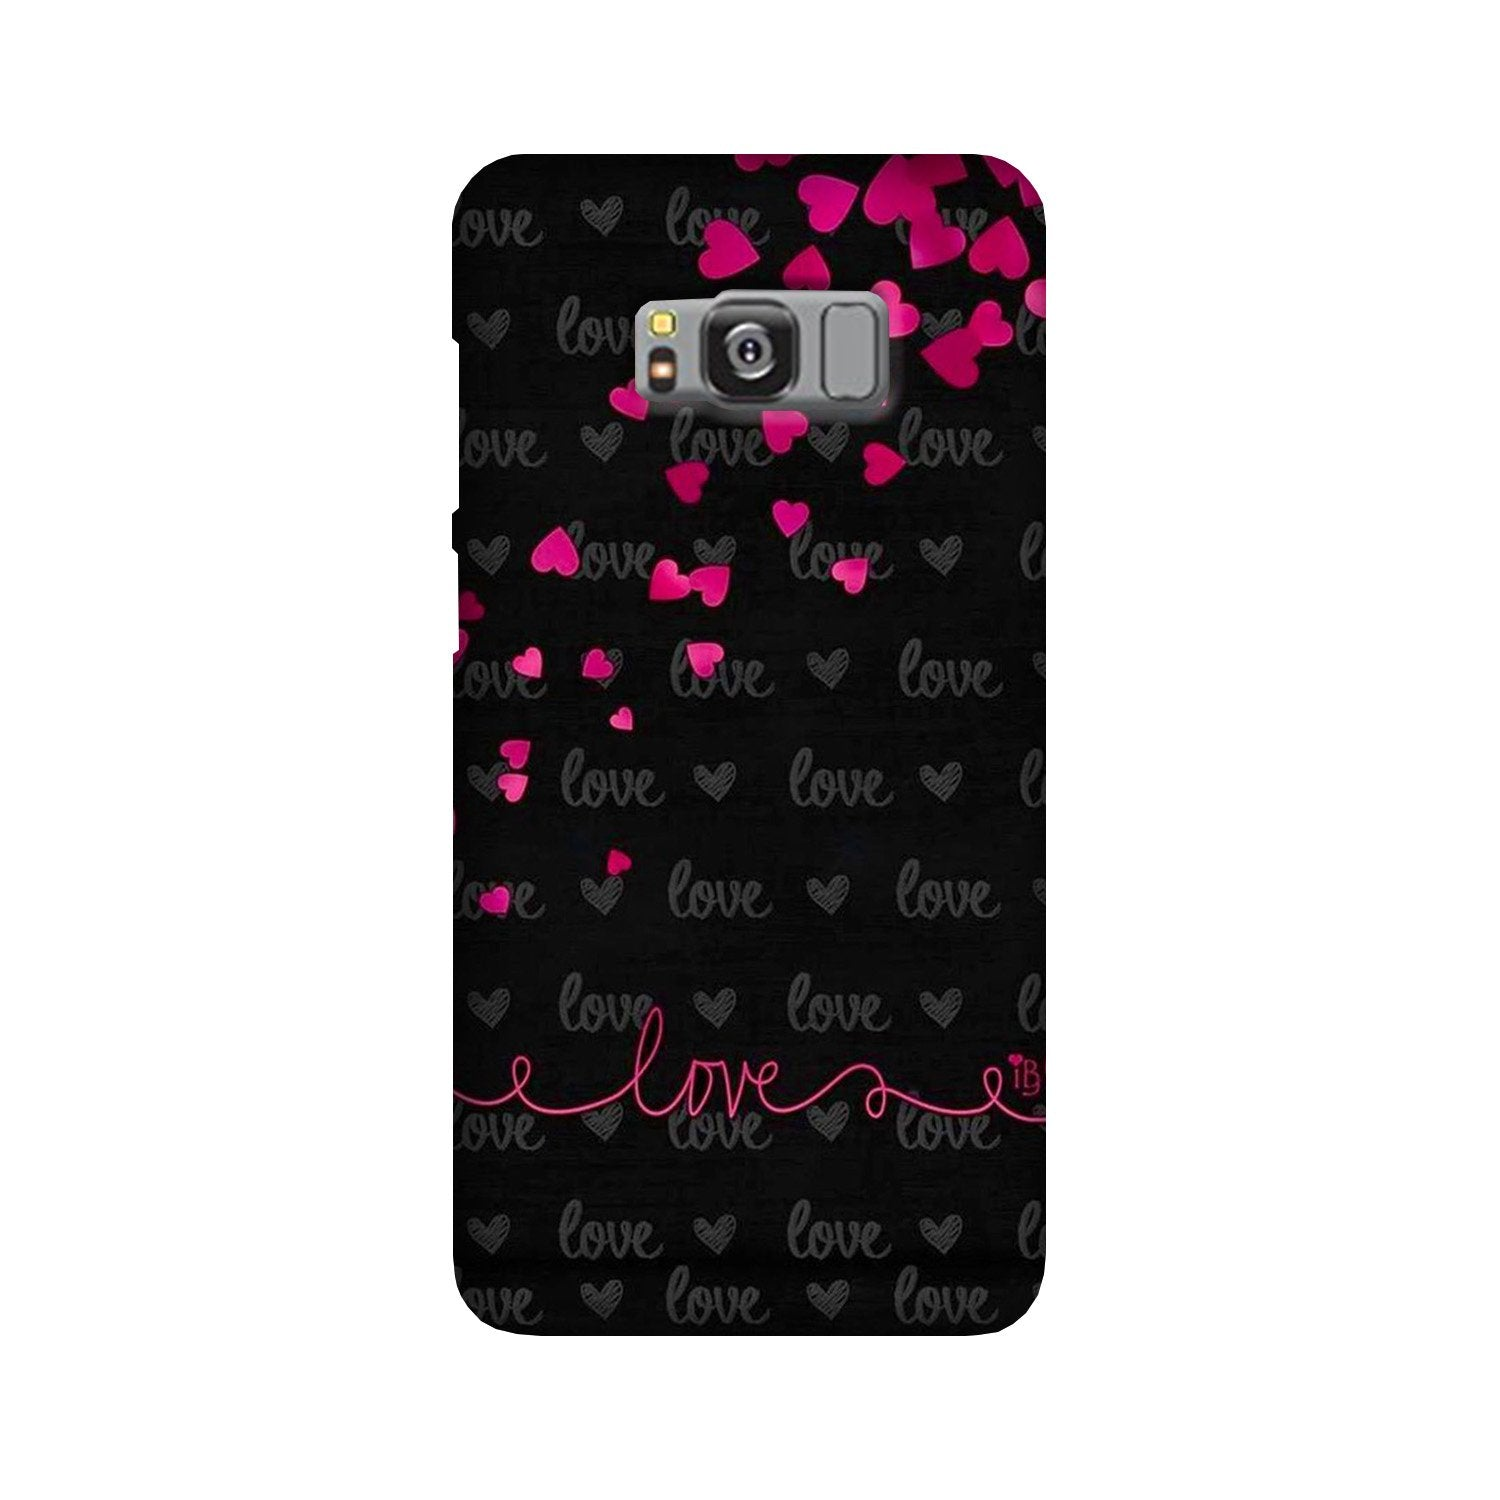 Love in Air Case for Galaxy S8